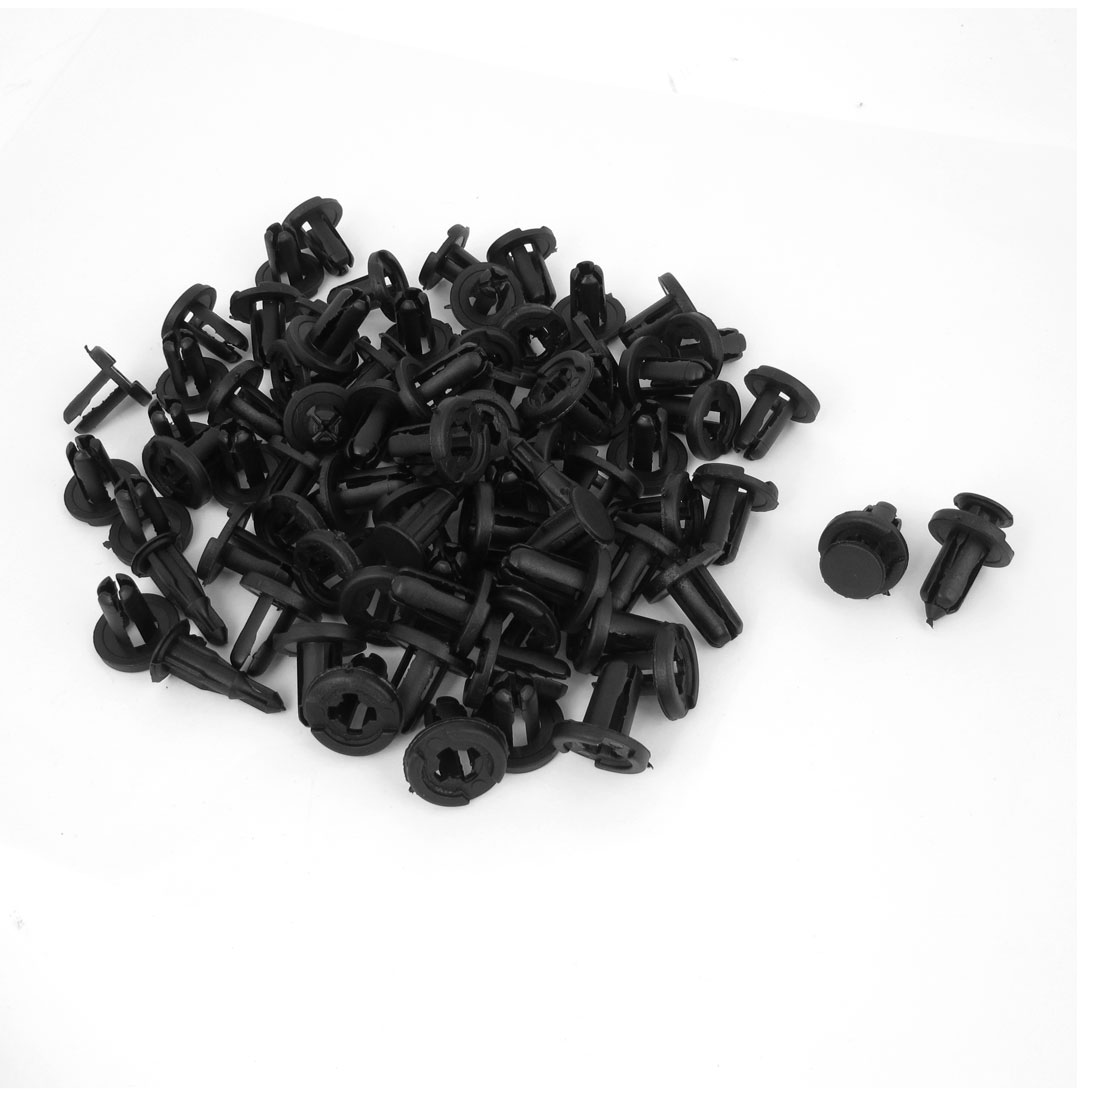 100 Pcs 10mm Dia Black Plastic Rivet Bumper Grills Fastener Clip for Toyota